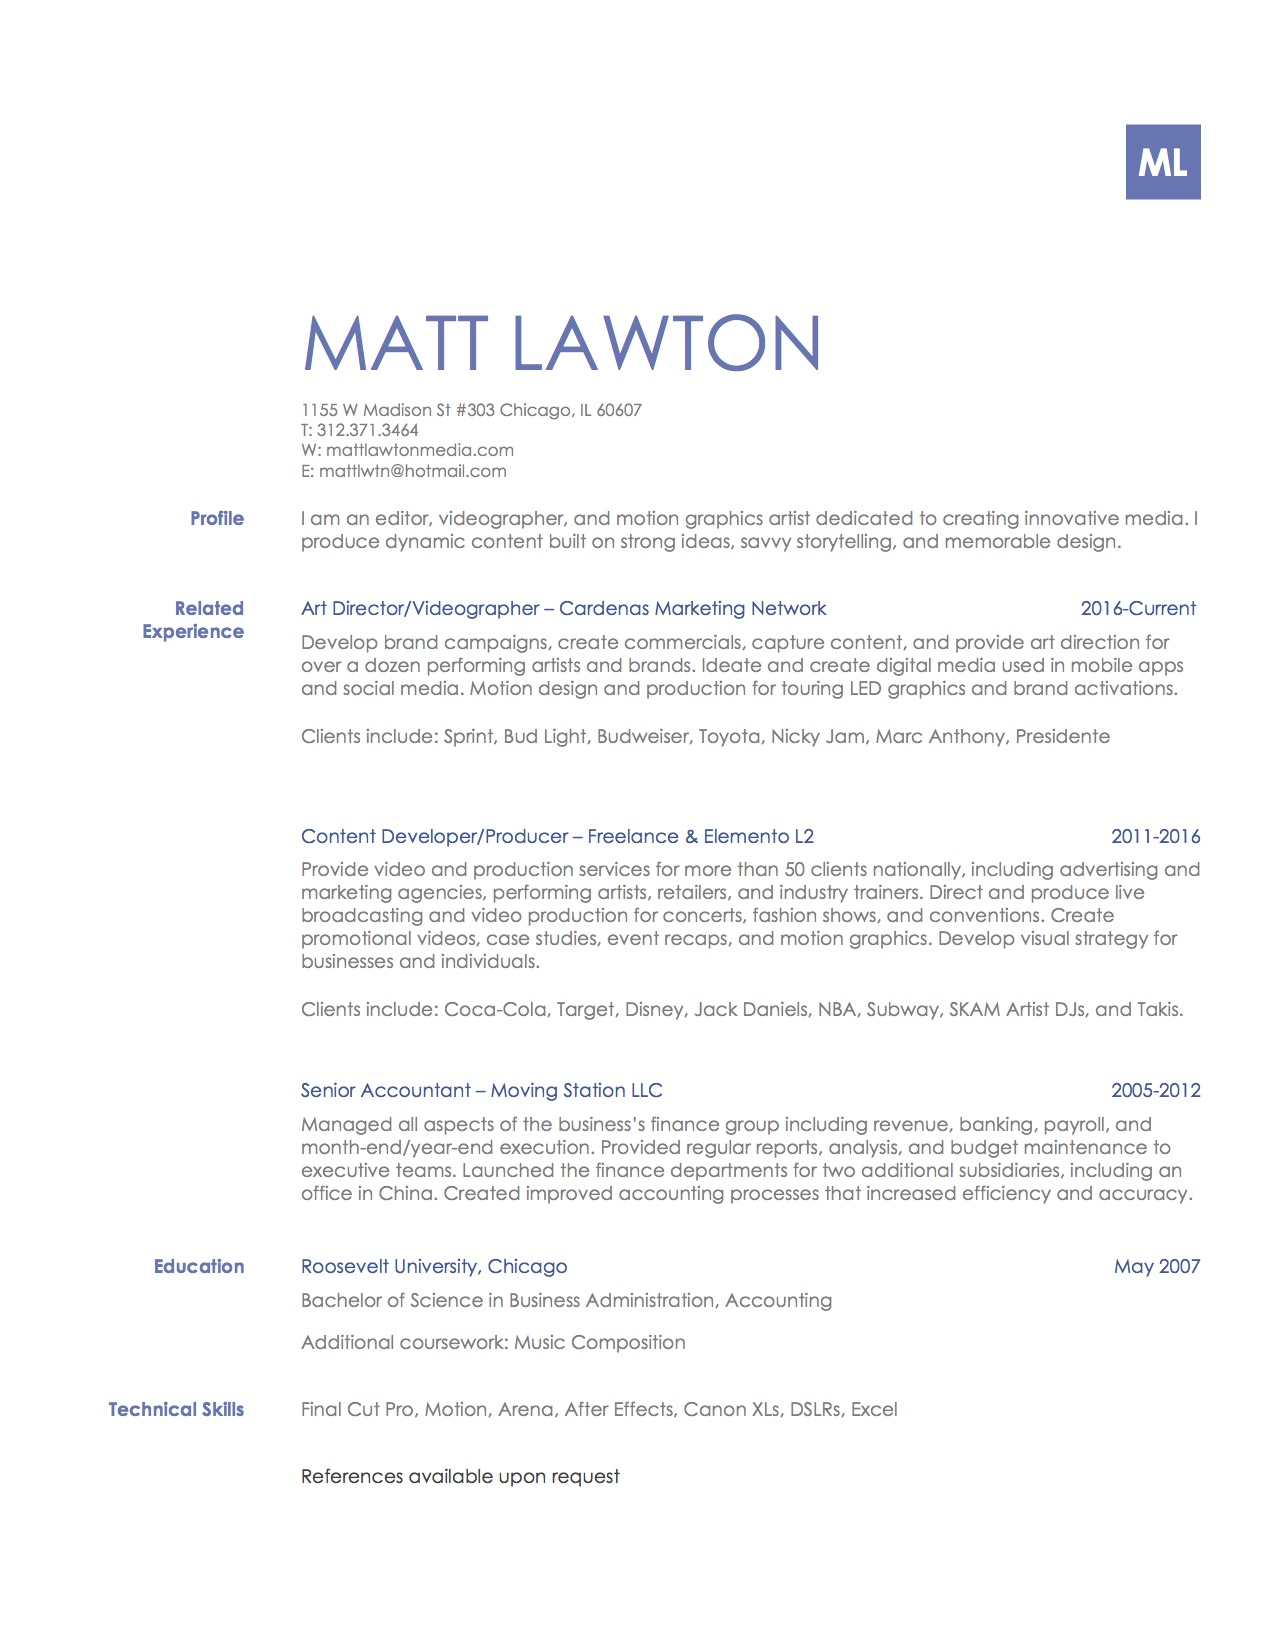 Videographer resume example